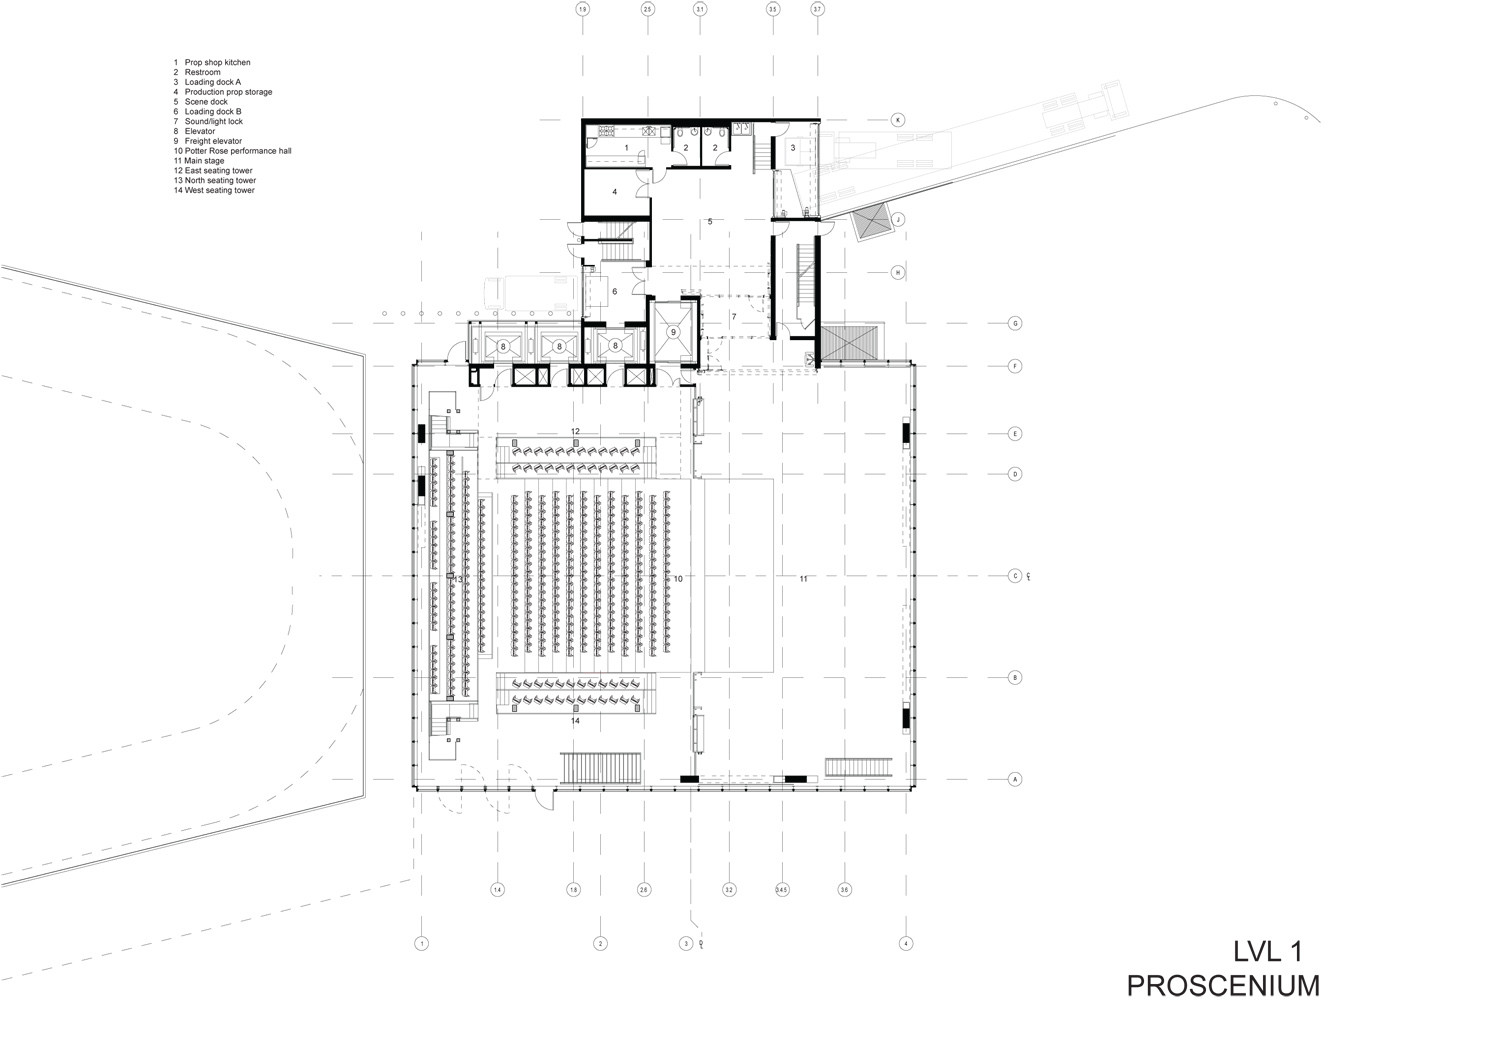 Teatro dee and charles wyly rex oma archdaily m xico for 512 plan